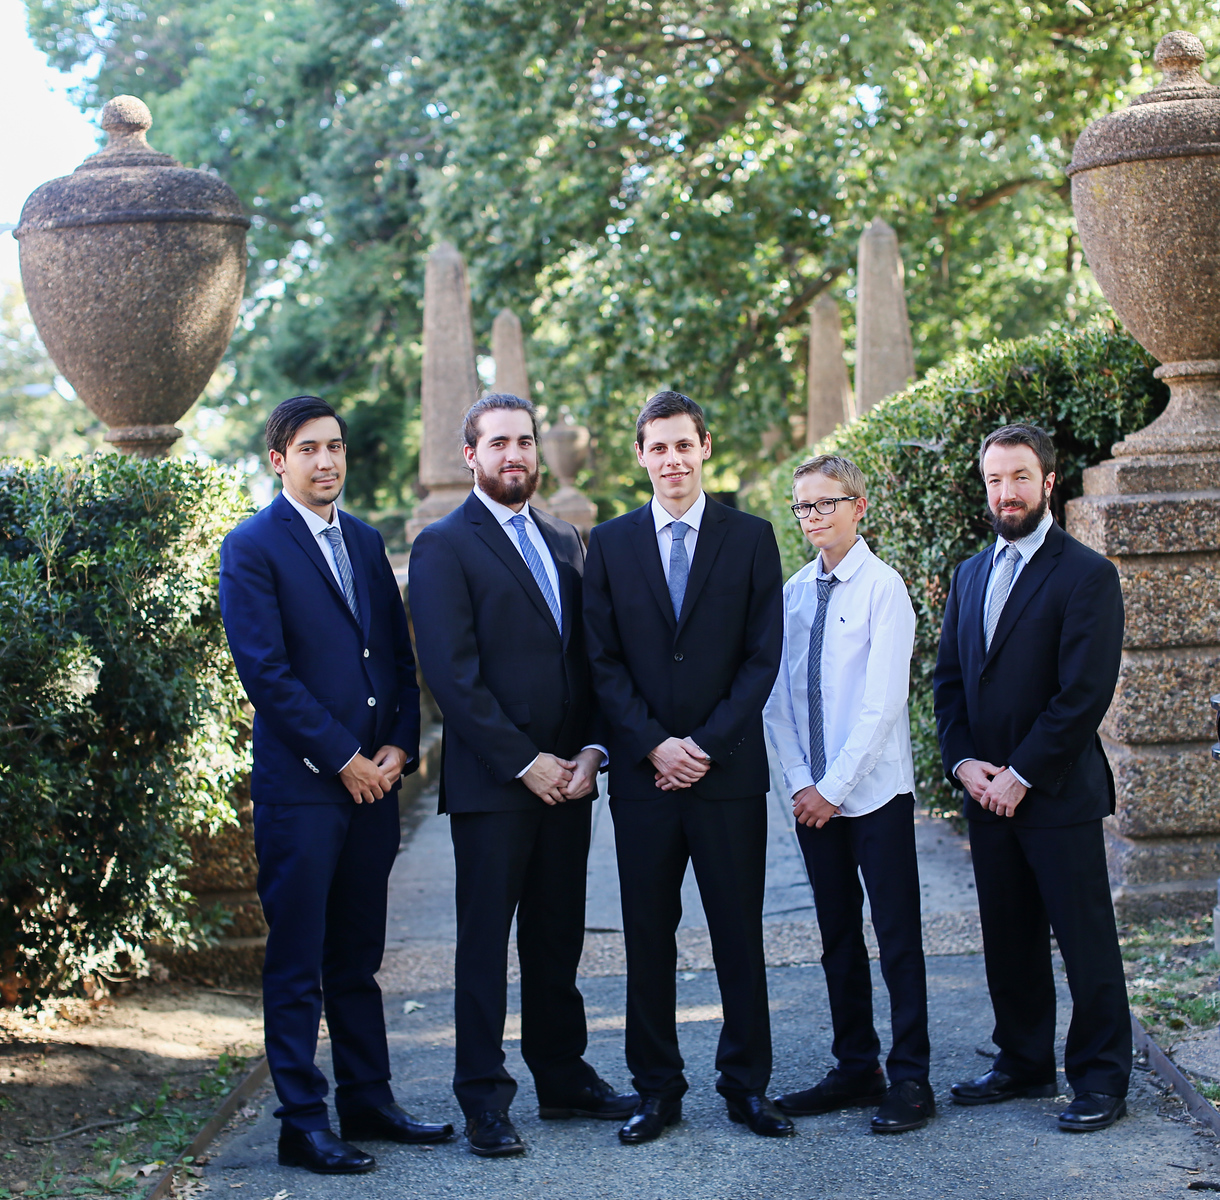 Washington, D.C. groomsmen before the wedding at the Josephine Butler Parks Center.